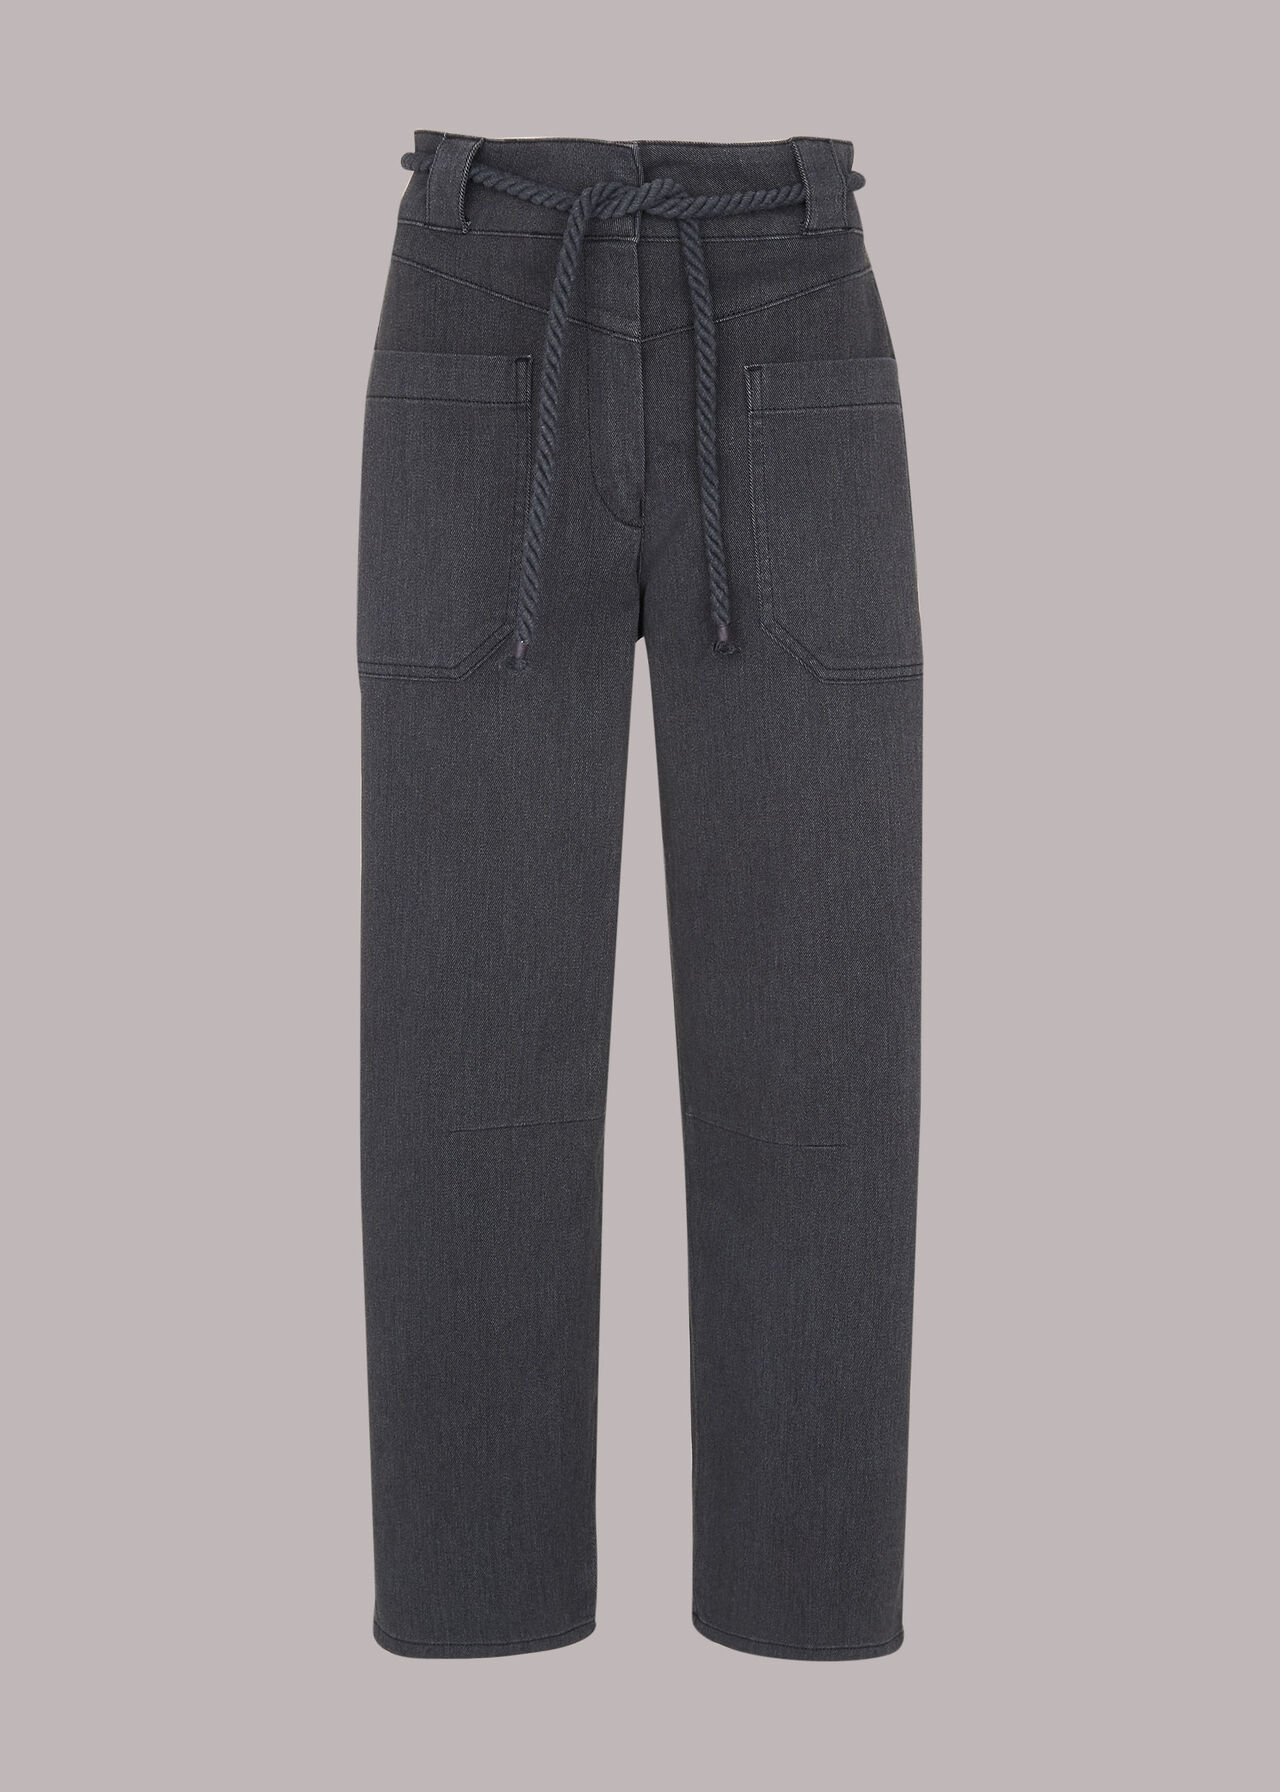 Rope Belted Casual Trouser